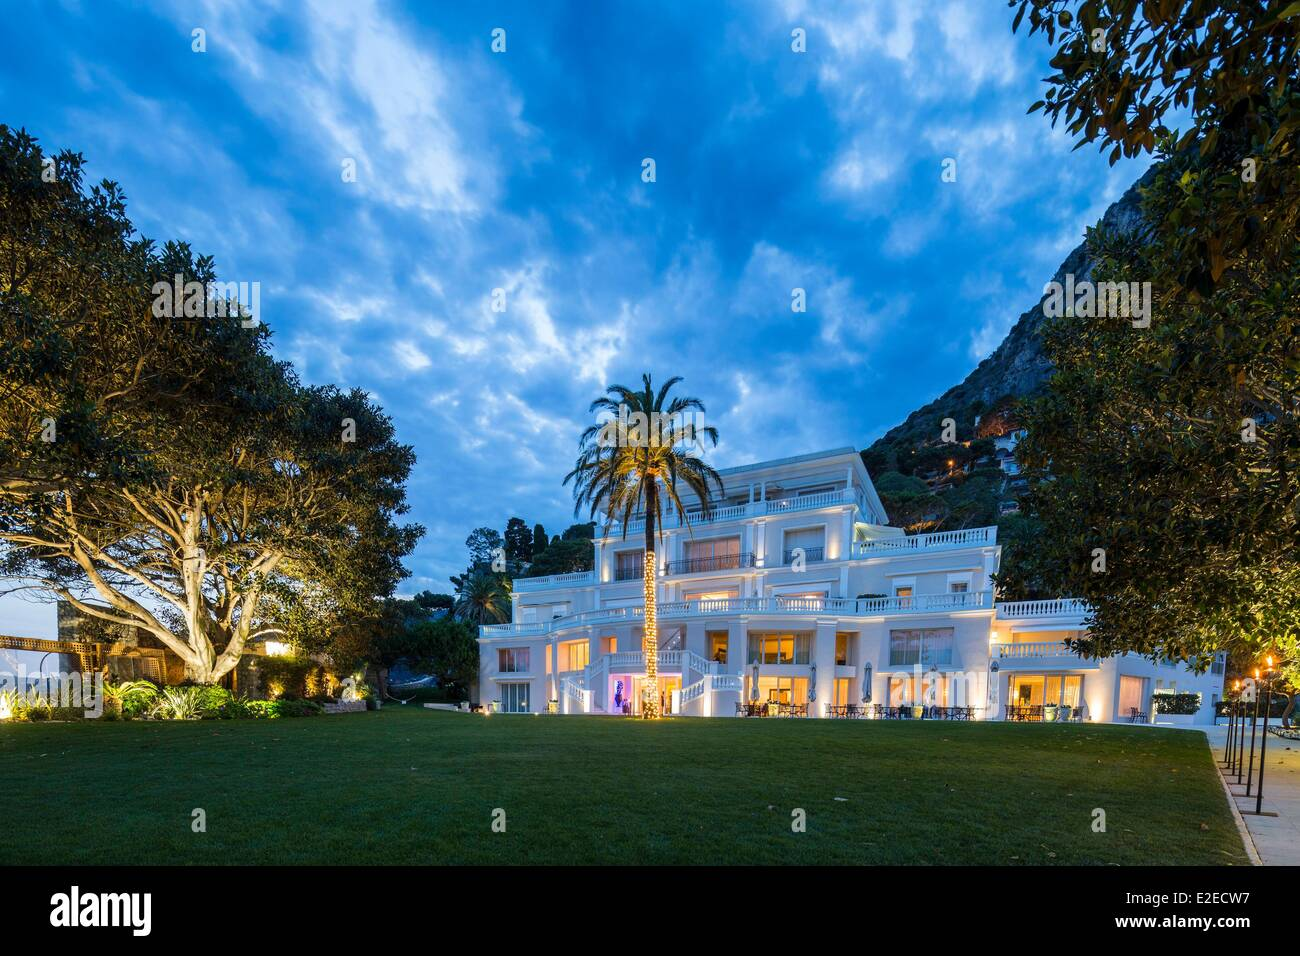 france alpes maritimes eze bord de mer 5 star hotel the cap estel stock photo royalty free. Black Bedroom Furniture Sets. Home Design Ideas